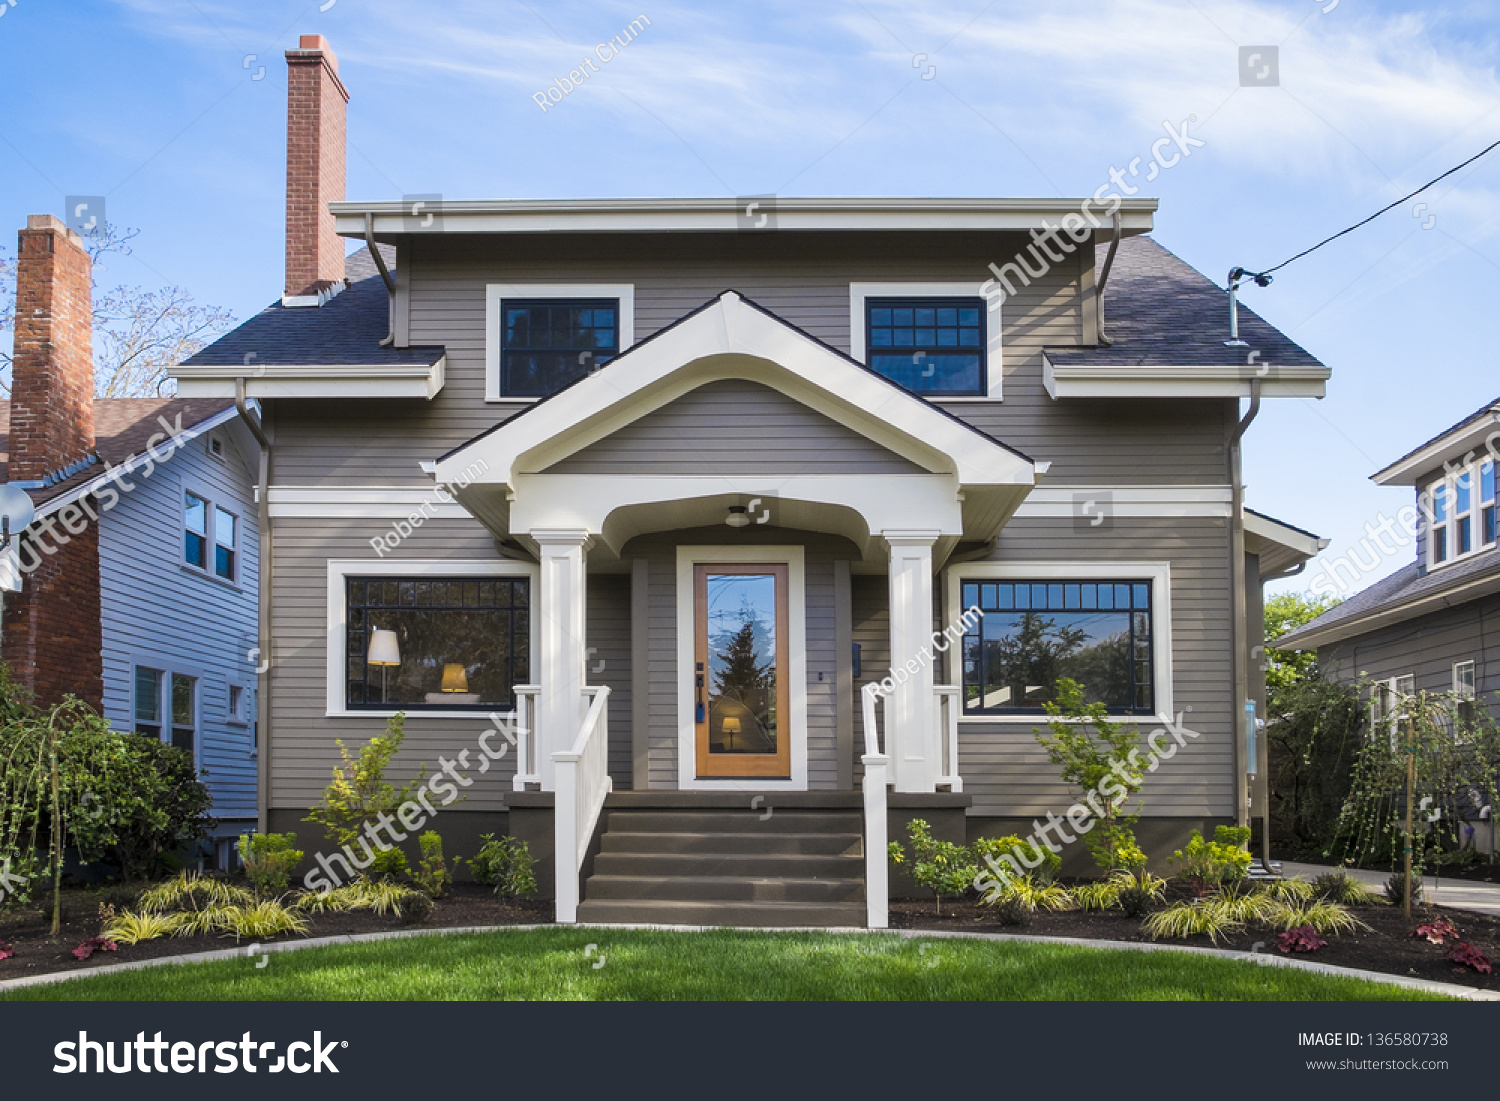 Singlefamily merican raftsman House Blue Sky Stock Photo ... - ^